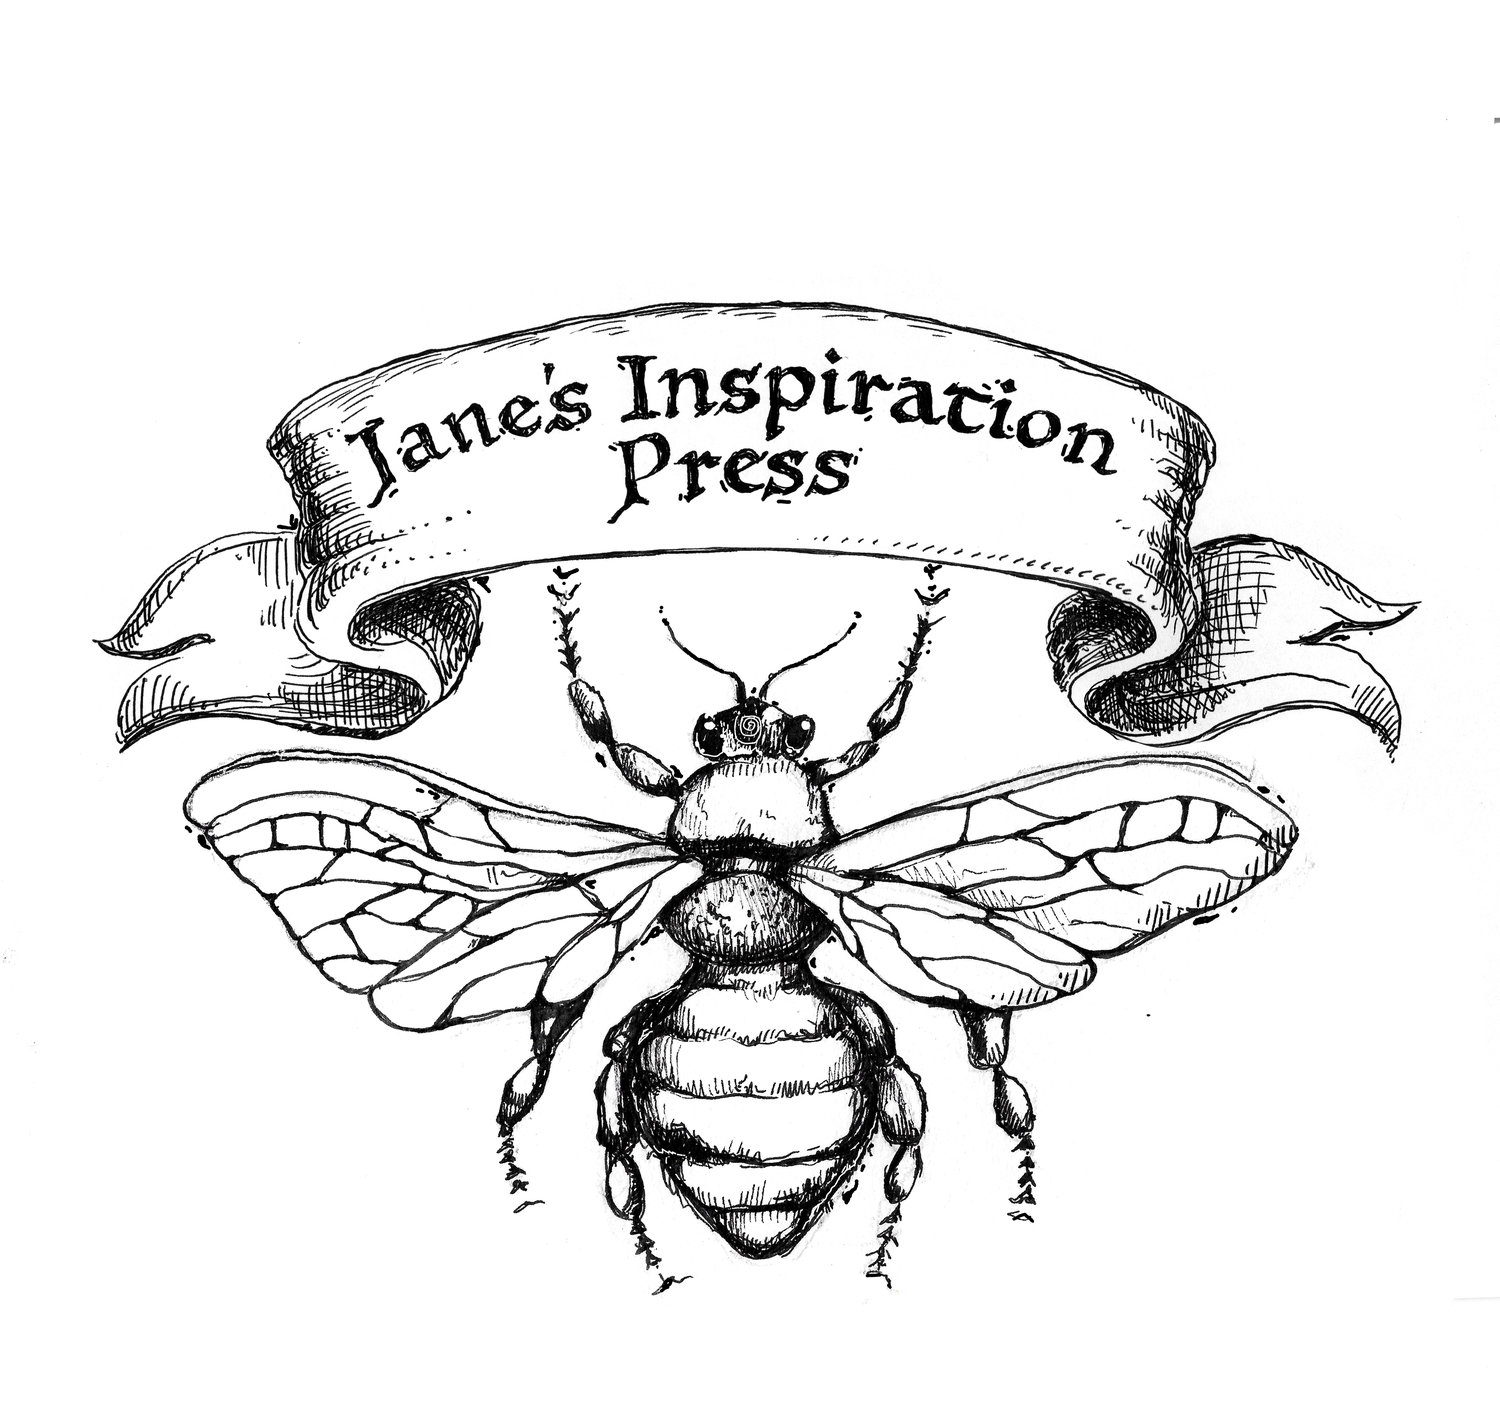 Jane's Inspiration Press